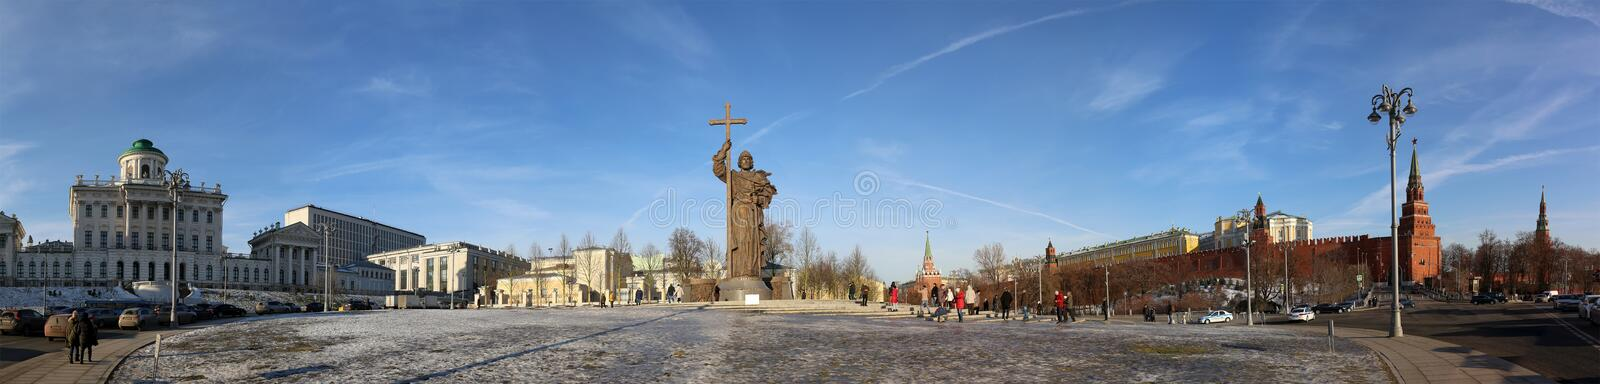 Monument to Holy Prince Vladimir the Great on Borovitskaya Square in Moscow near the Kremlin, Russia. royalty free stock image